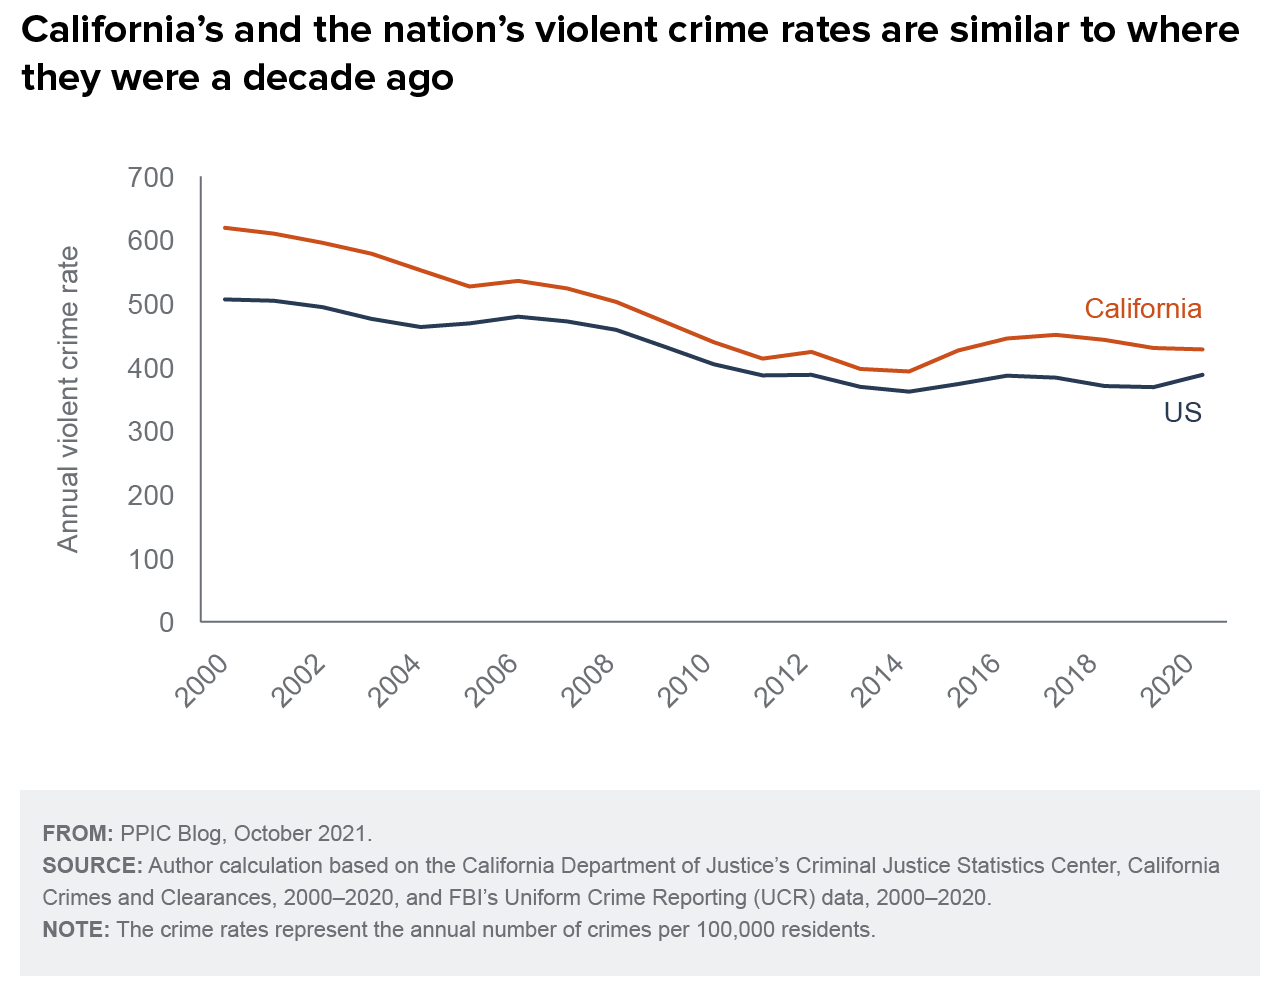 figure - California's and the nation's violent crime rates are similar to where they were a decade ago